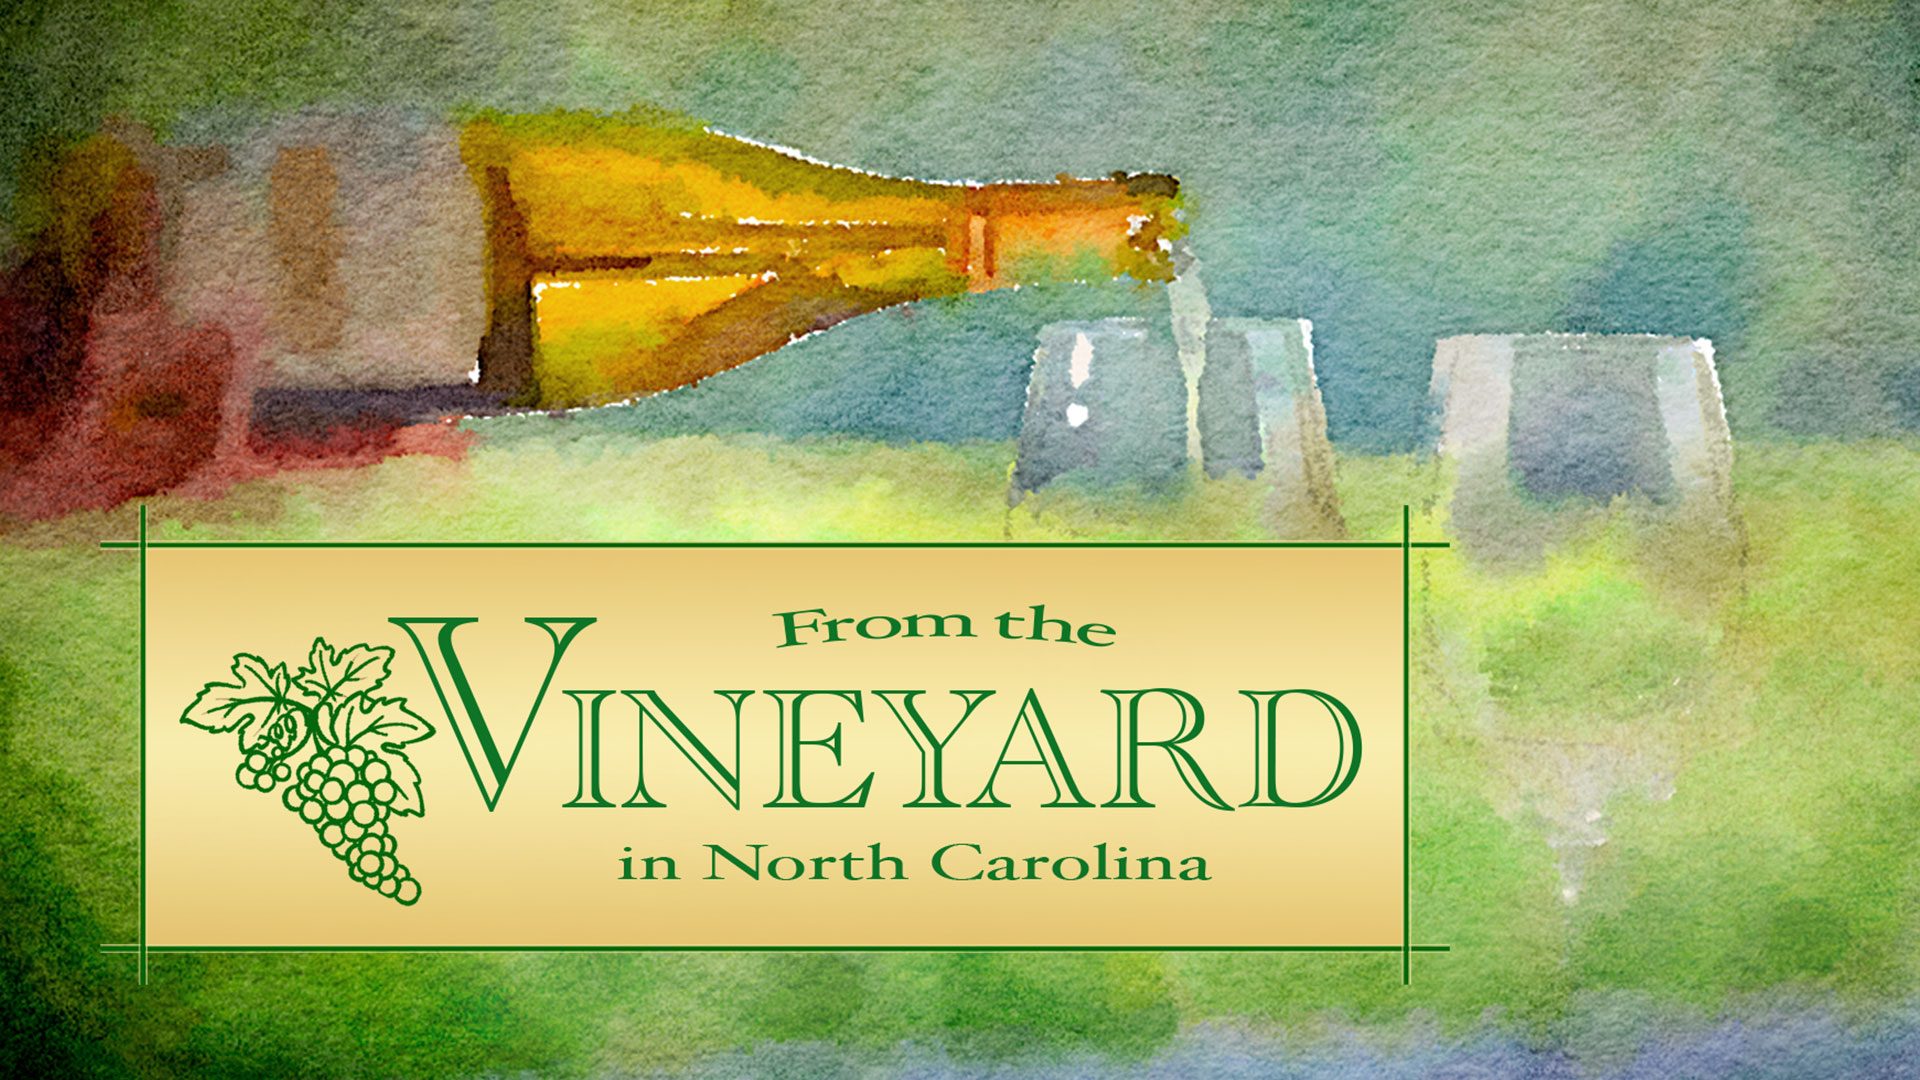 Fom the Vineyard logo